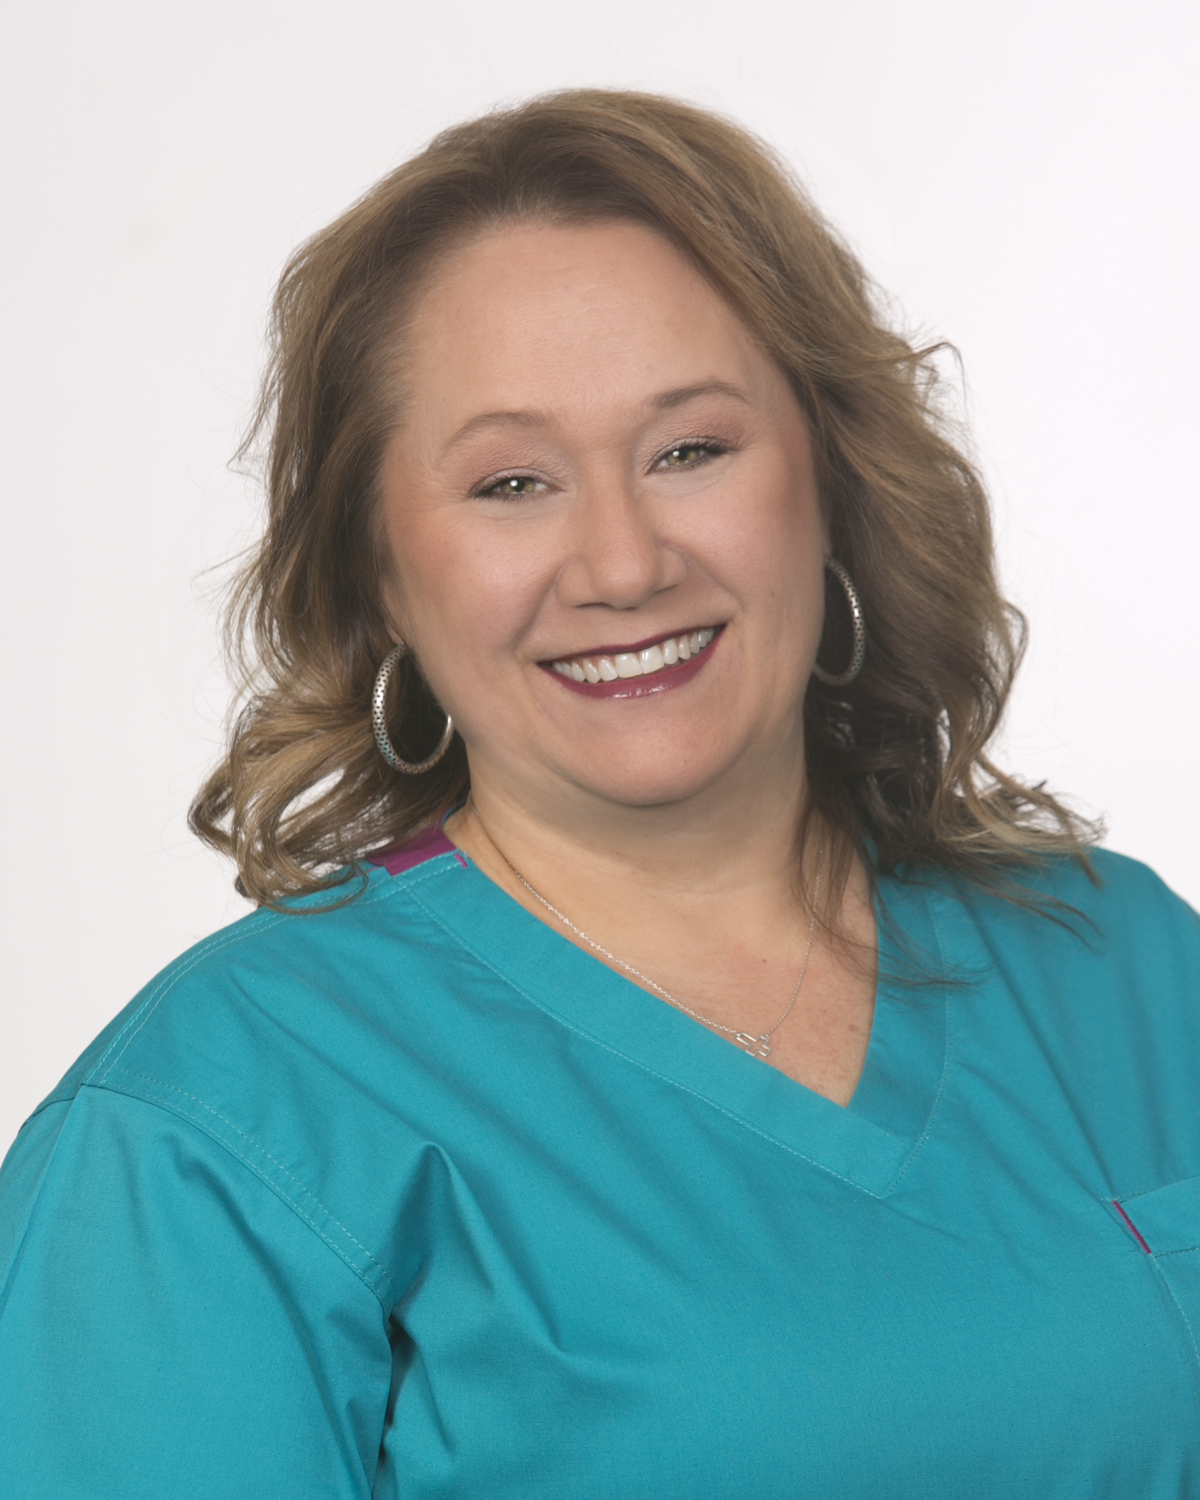 Denise M. Sisson – Clinic Operations Manager